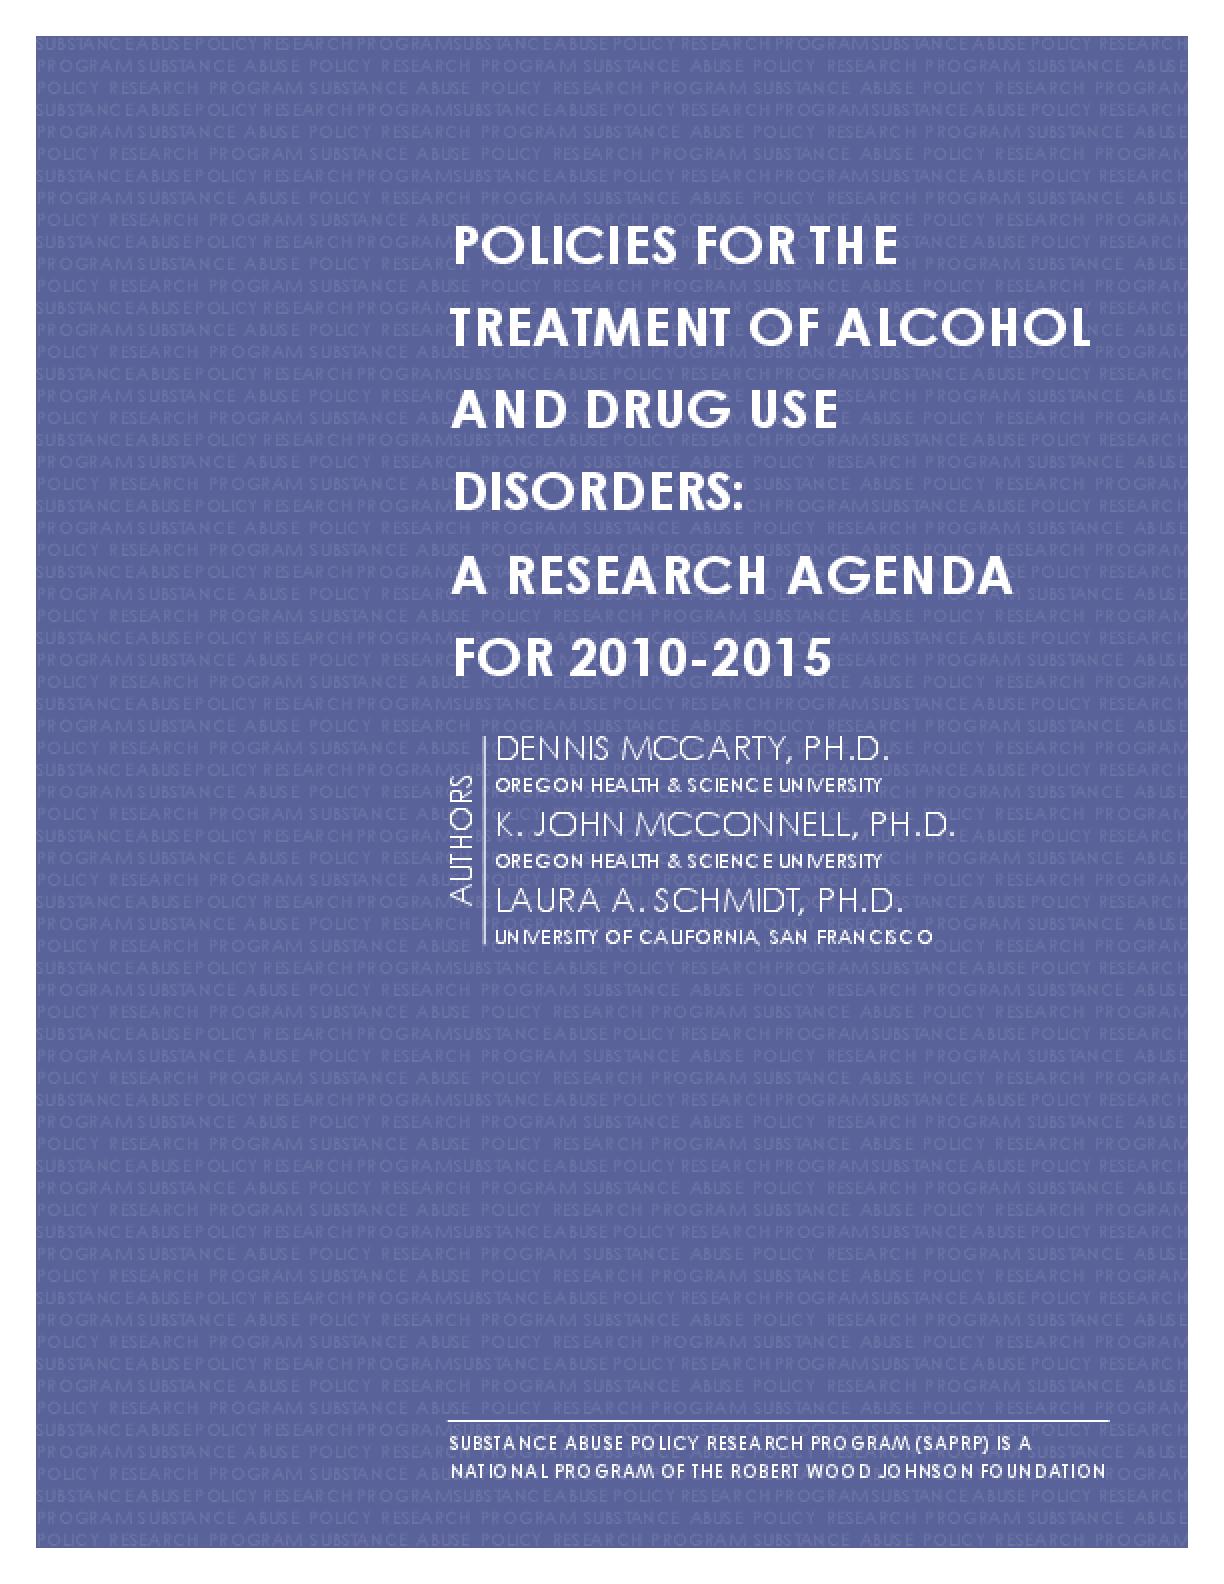 Policies for the Treatment of Alcohol and Drug Use Disorders: A Research Agenda for 2010-2015